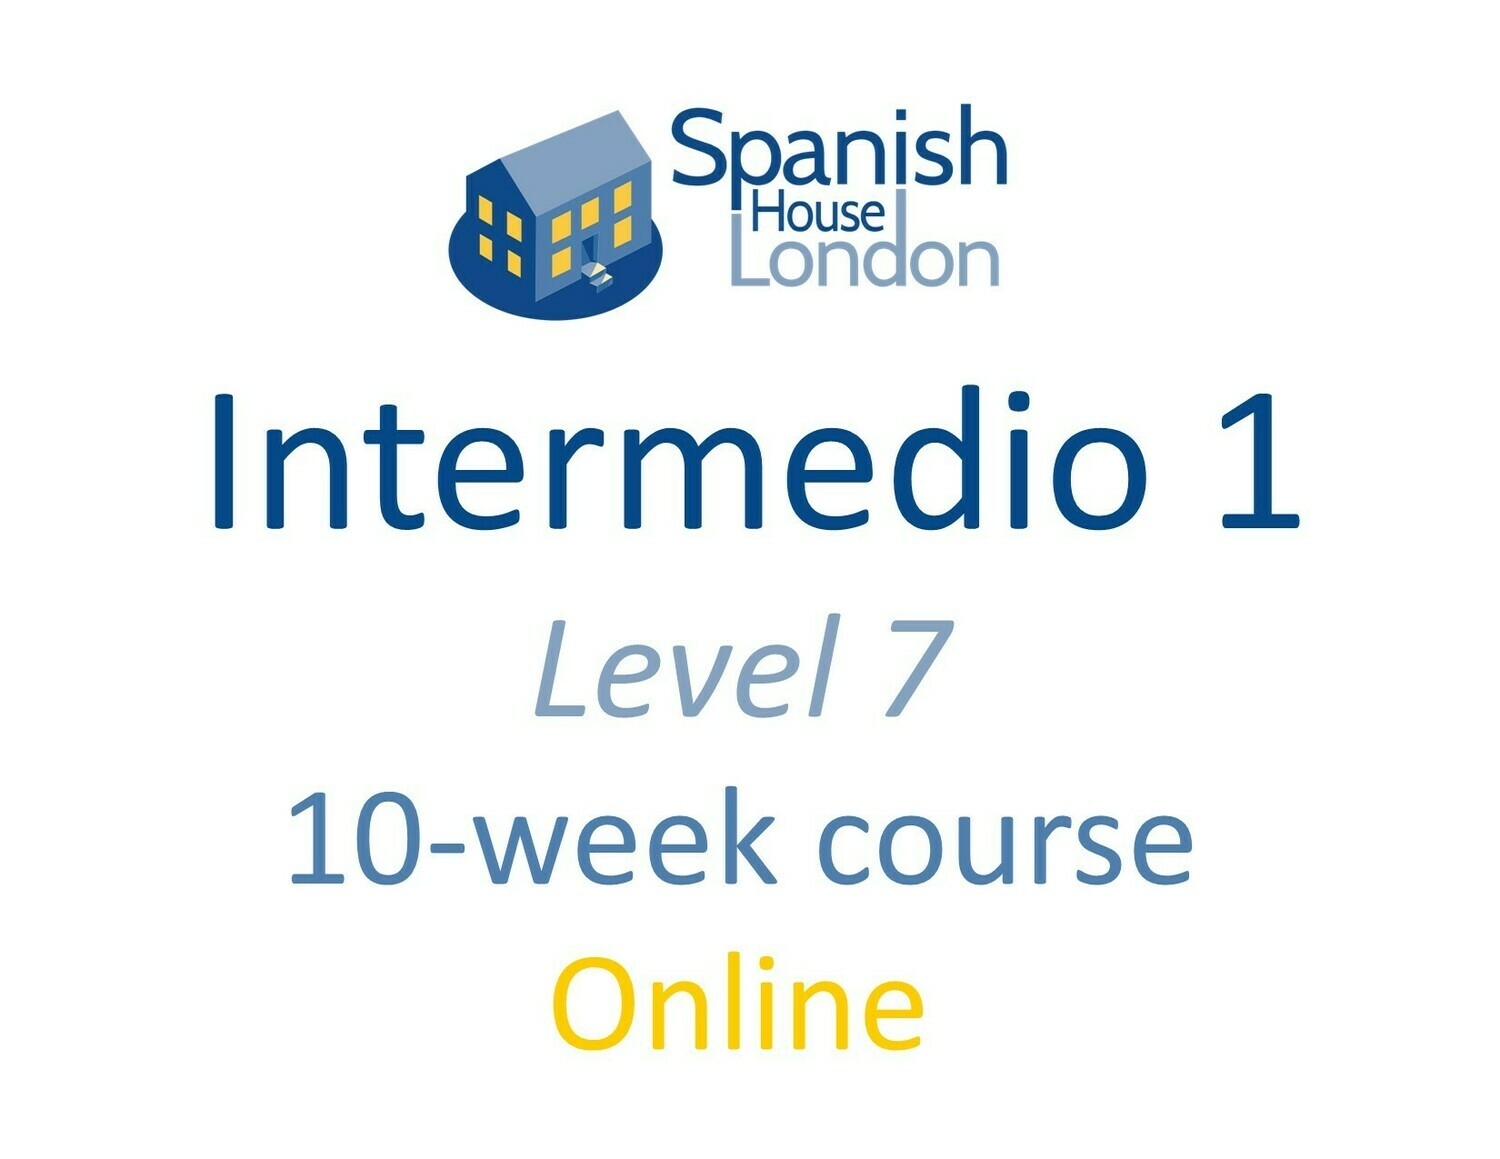 Intermedio 1 Course starting on 2nd August at 7.30pm